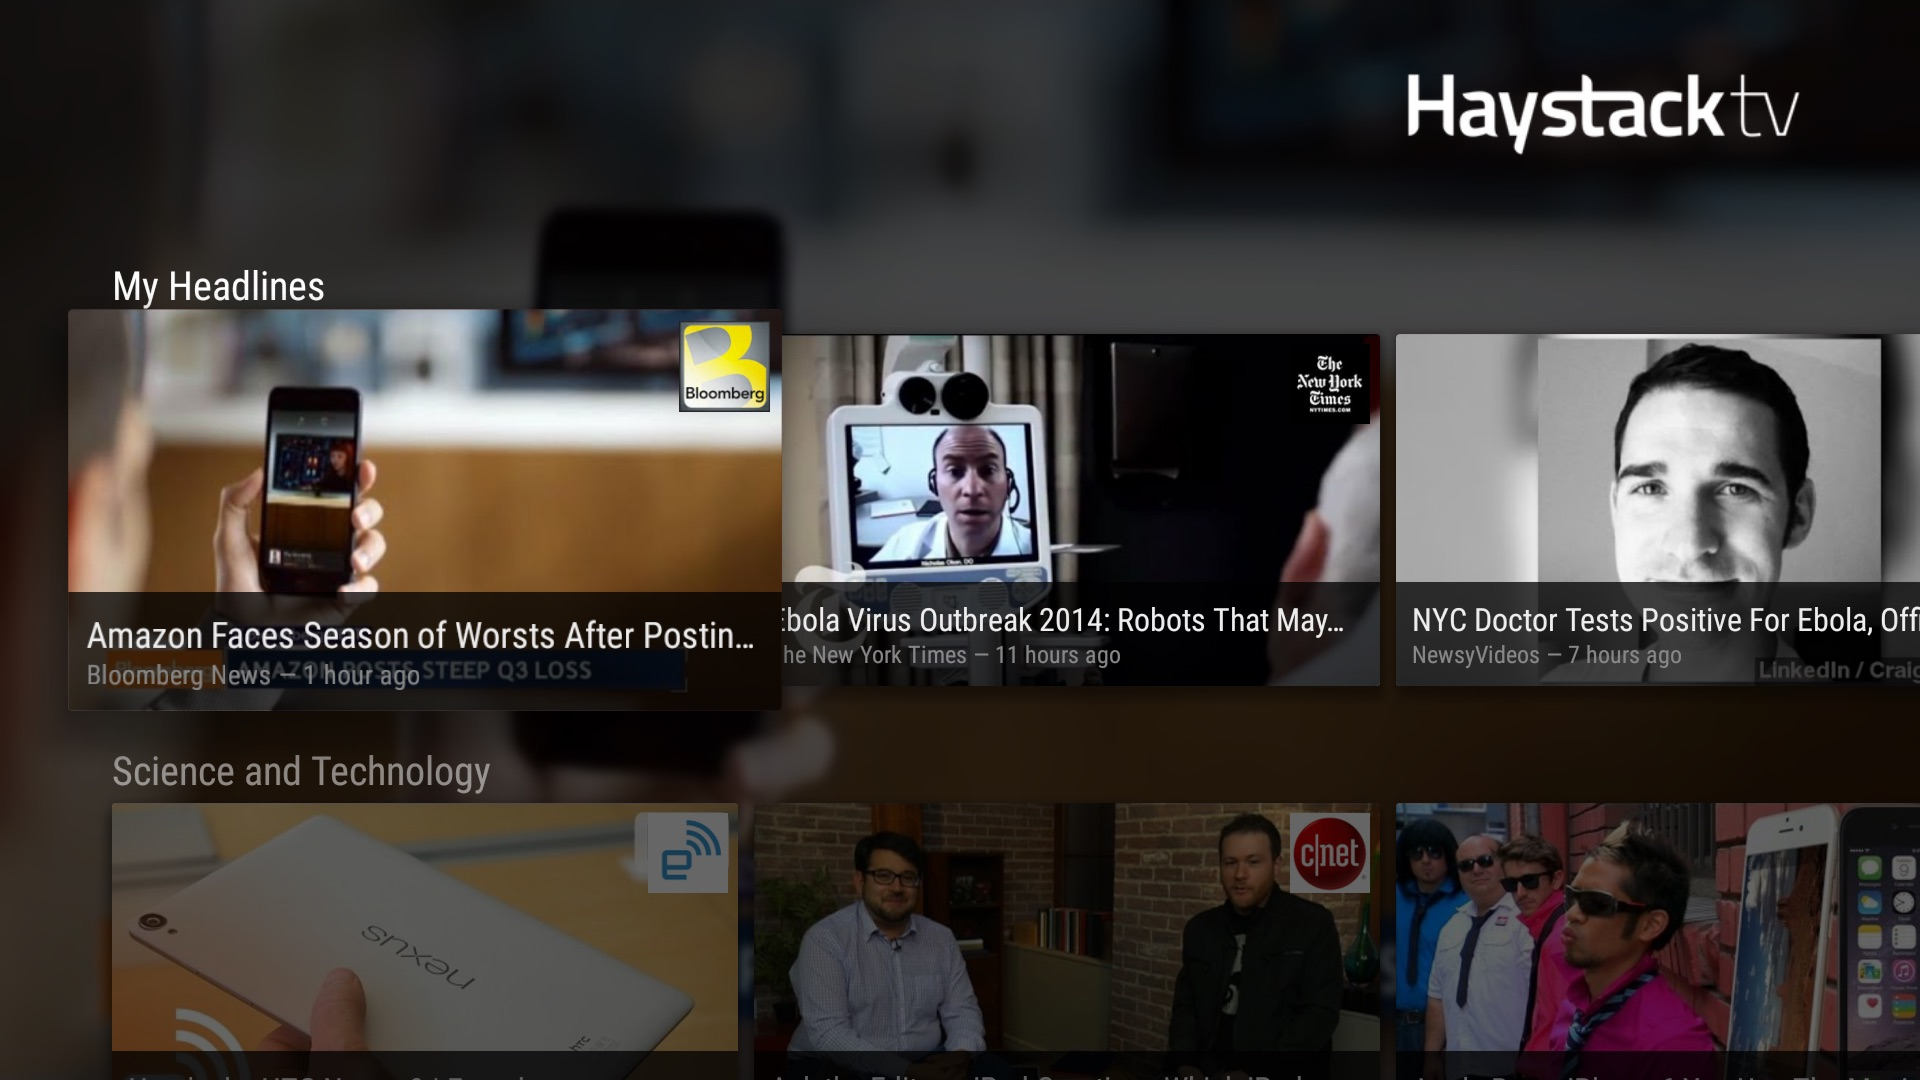 Haystack TV on Nexus Player